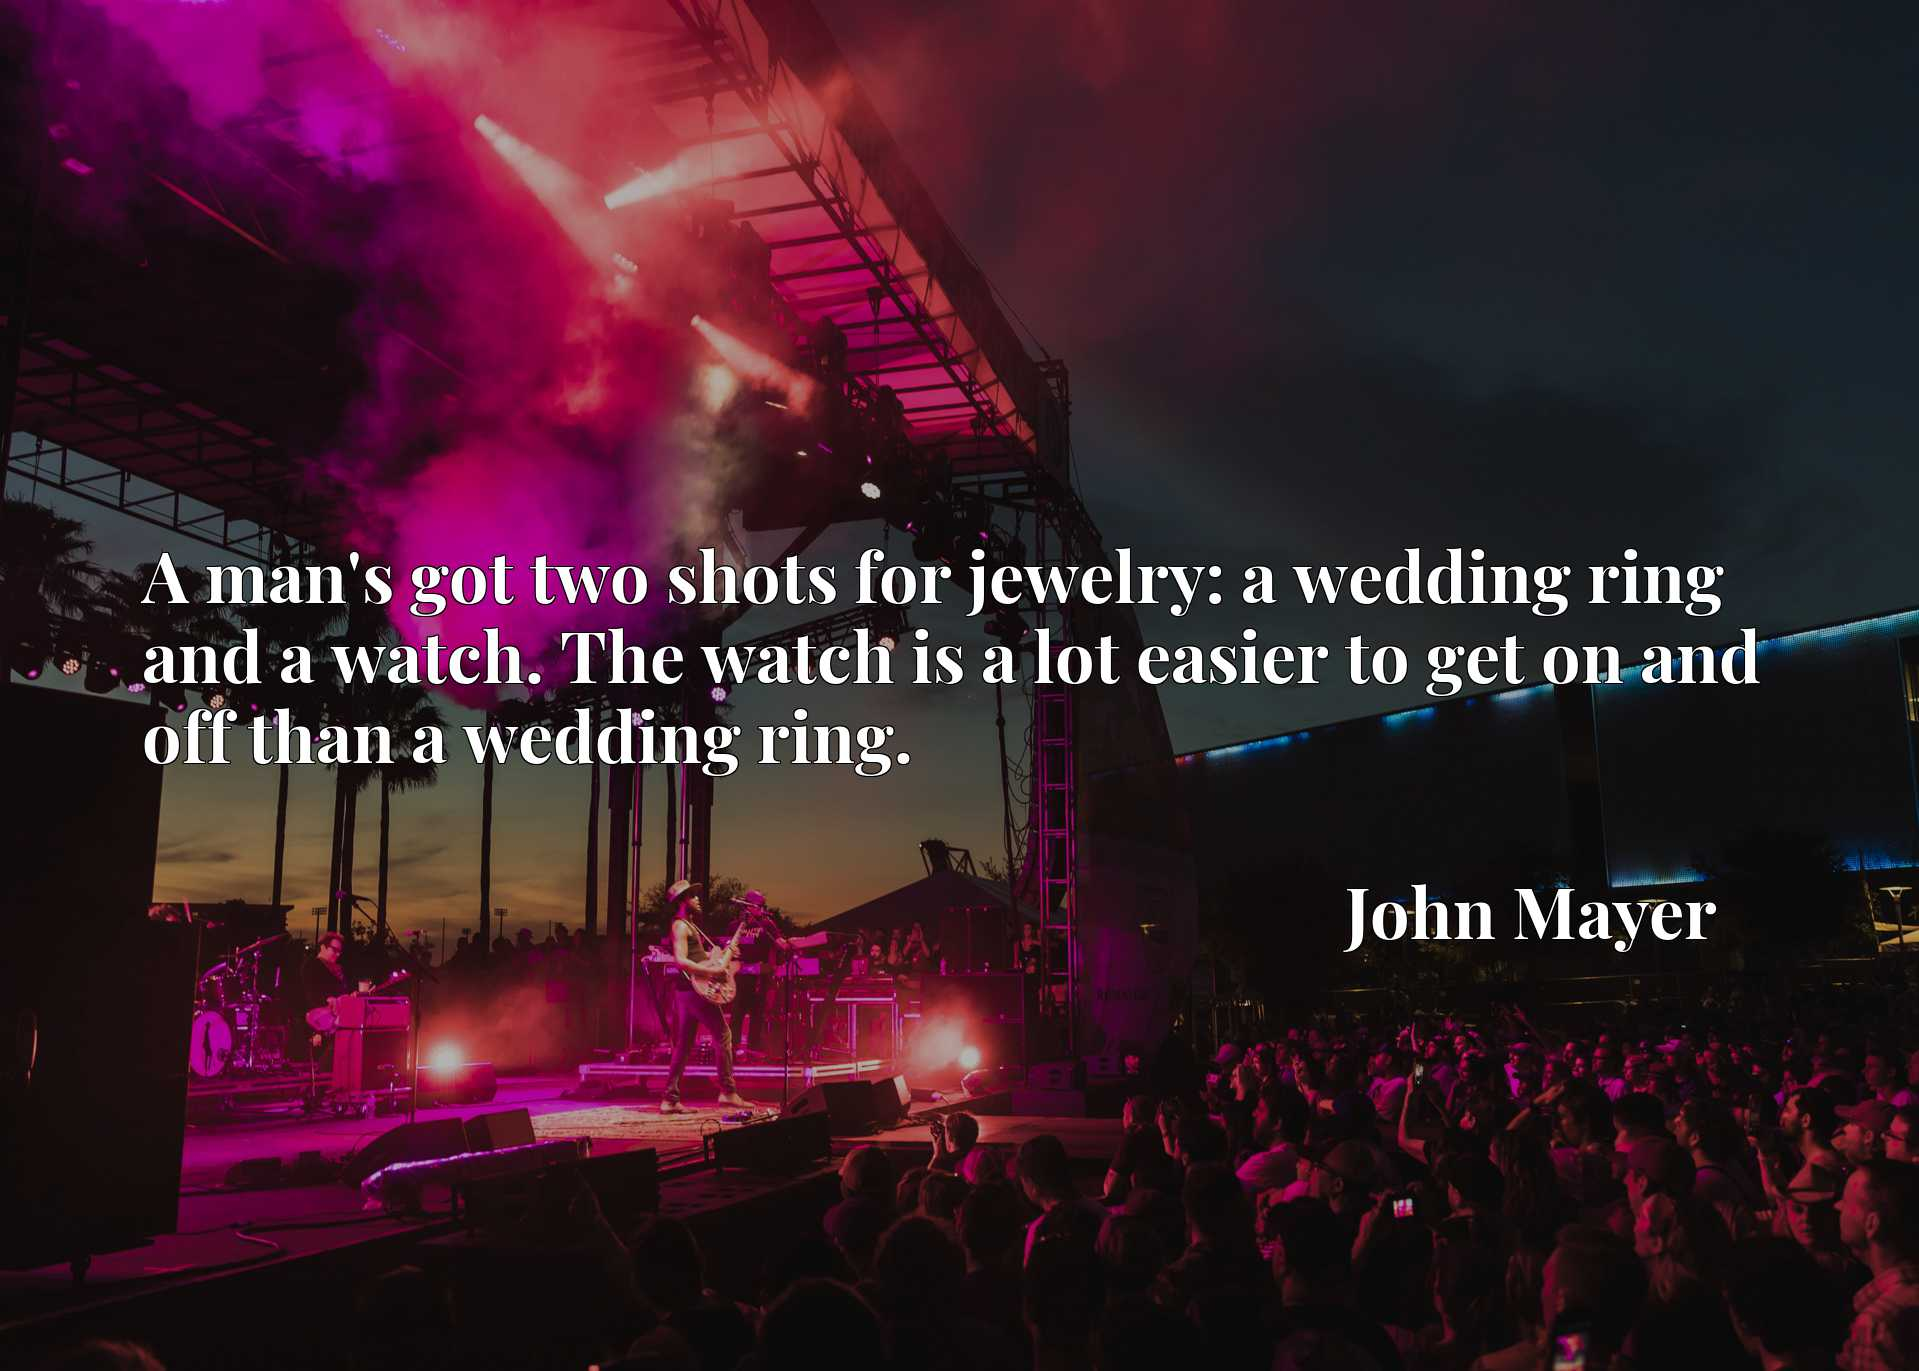 A man's got two shots for jewelry: a wedding ring and a watch. The watch is a lot easier to get on and off than a wedding ring.